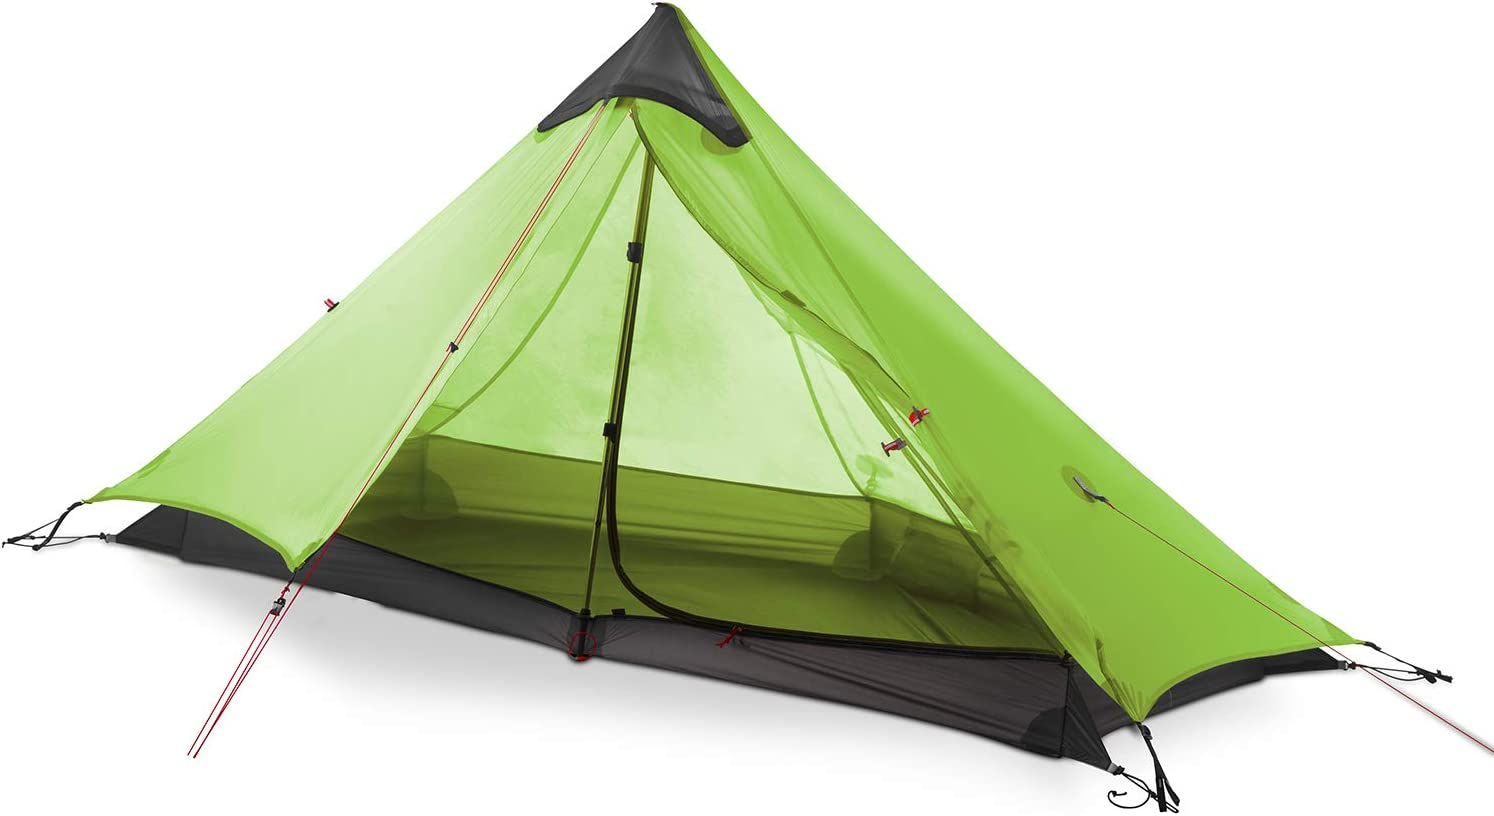 Details about  /Lightweight Camping Tent 1-3 Person Waterproof 2-Layer Aluminum Pole For Travel